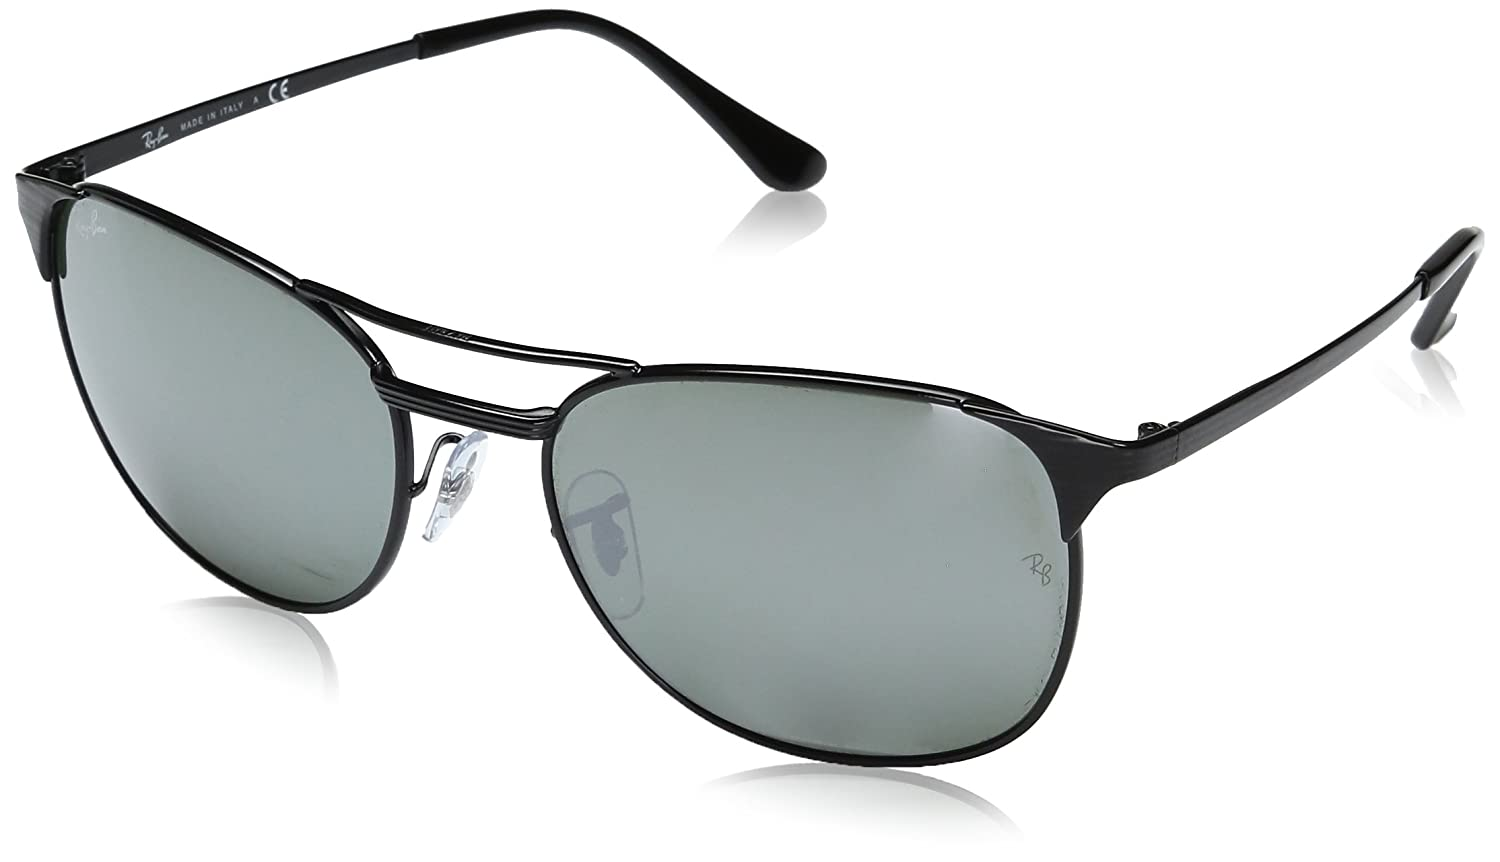 TALLA 55. Ray-Ban Sonnenbrille Signet (RB 3429M)